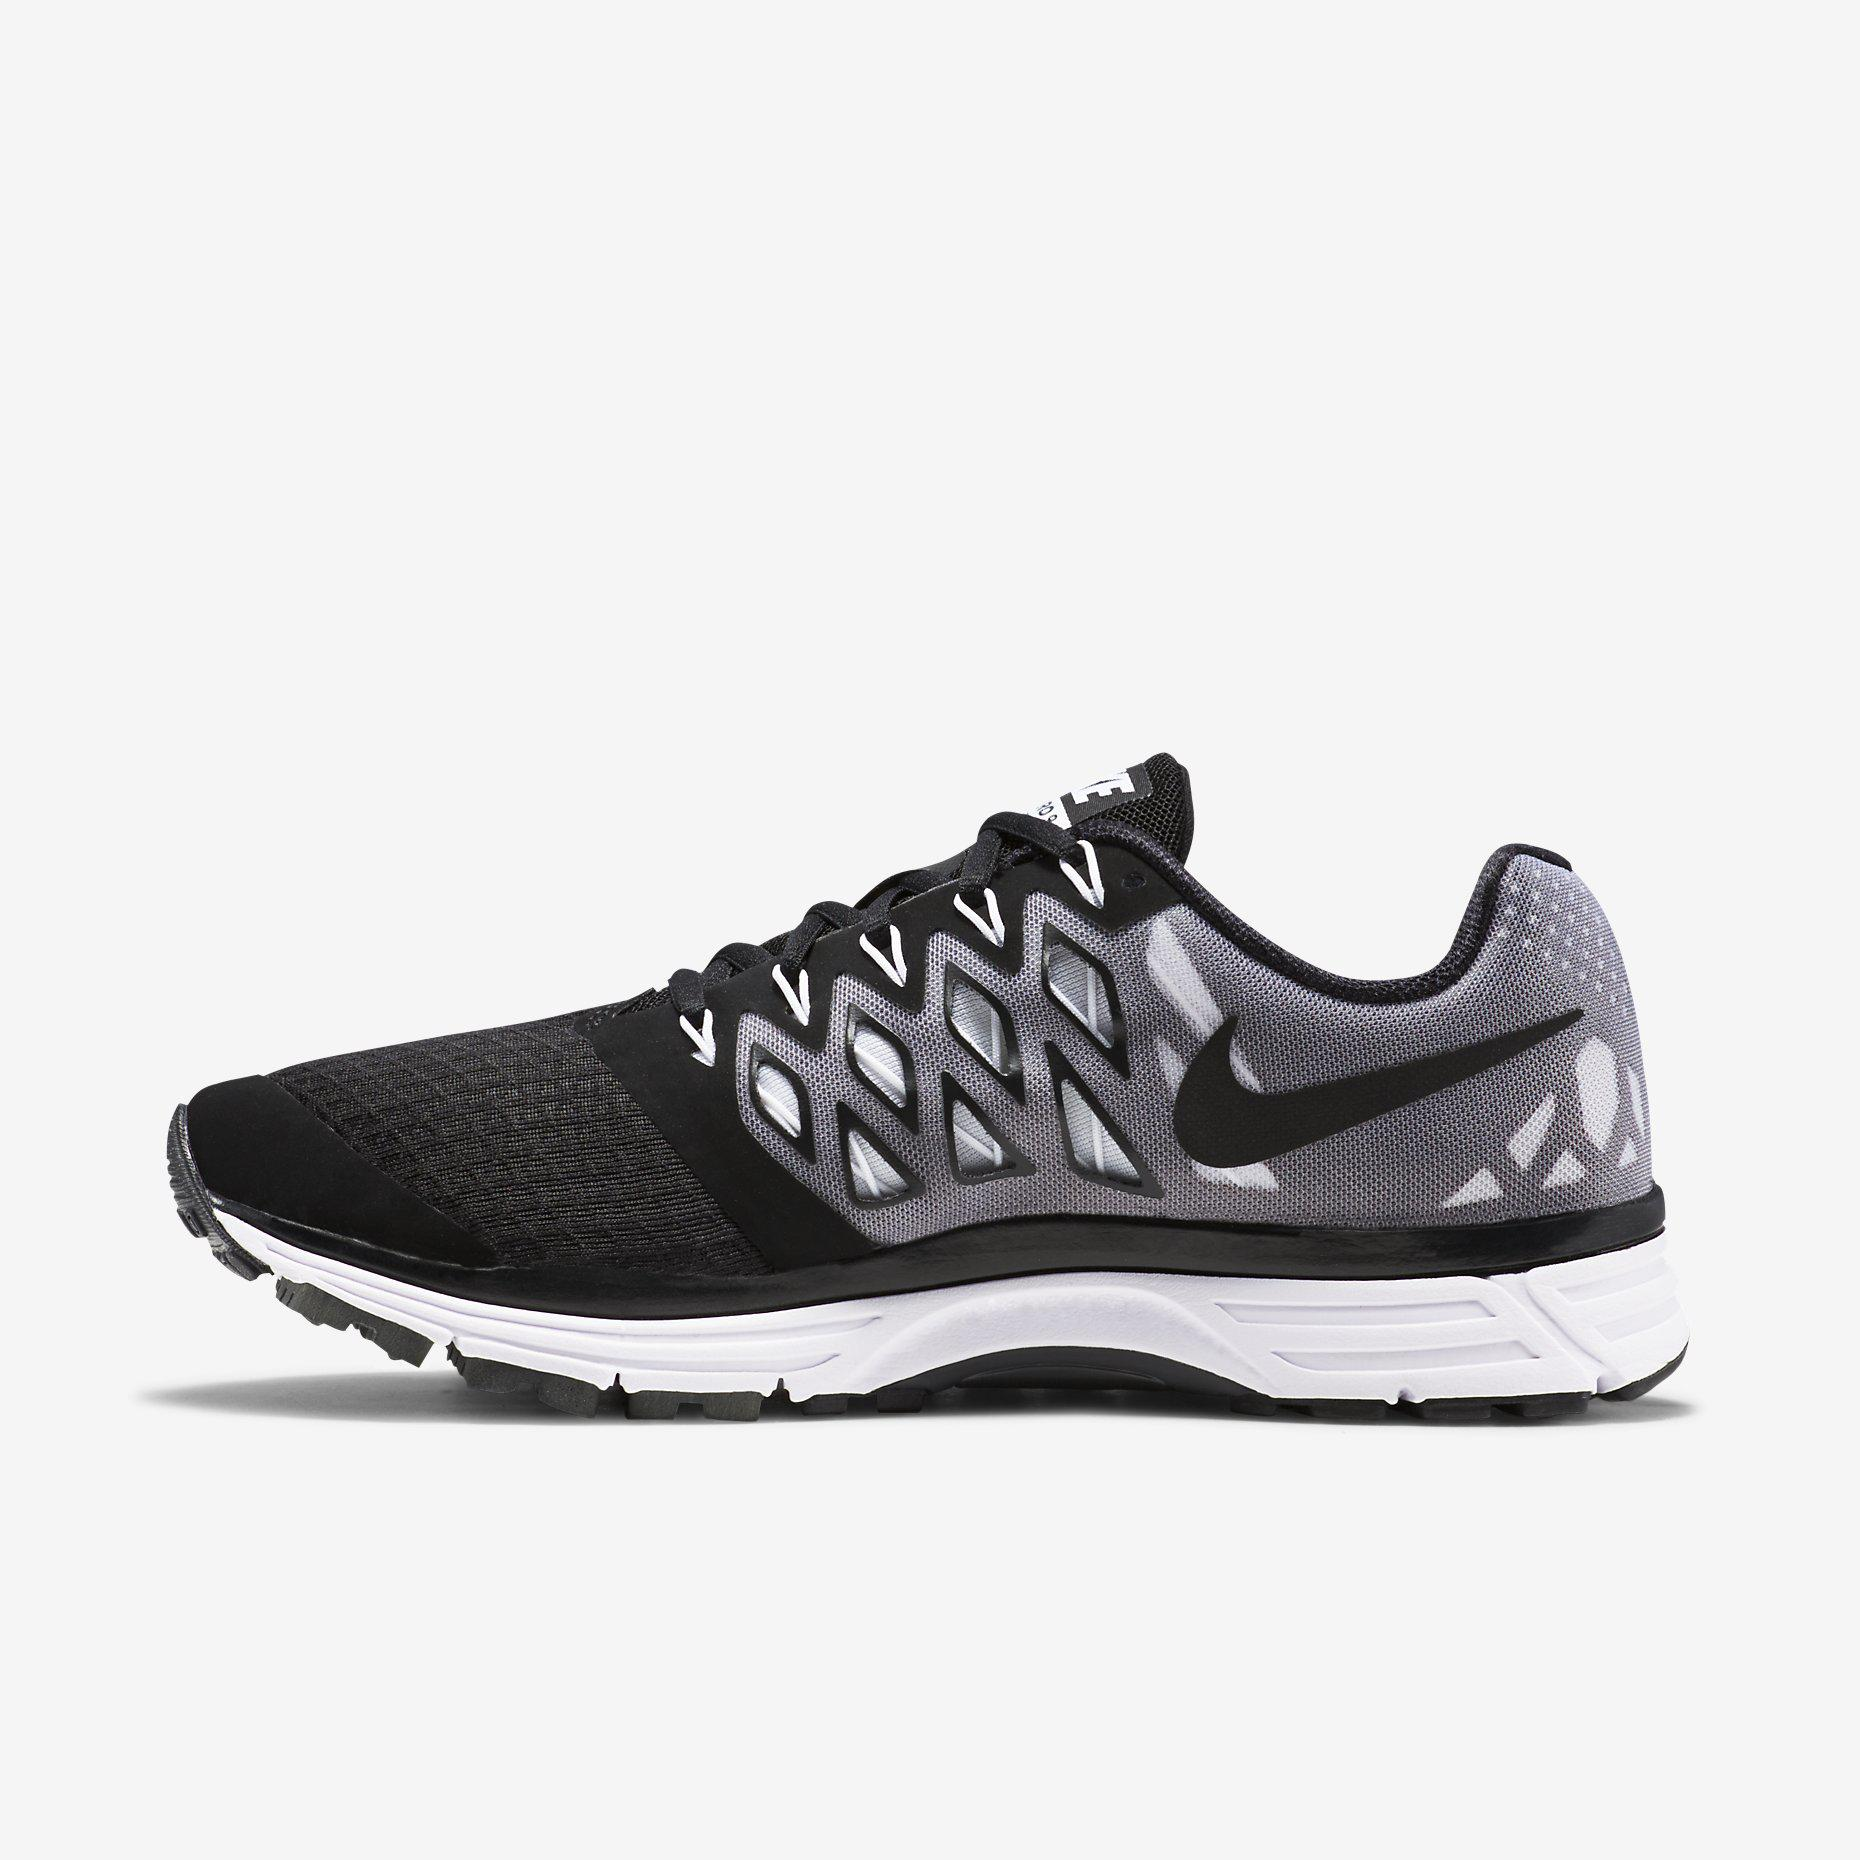 2e3d452ab610 Nike Mens Zoom Vomero 9 Running Shoes - Black White - Tennisnuts.com